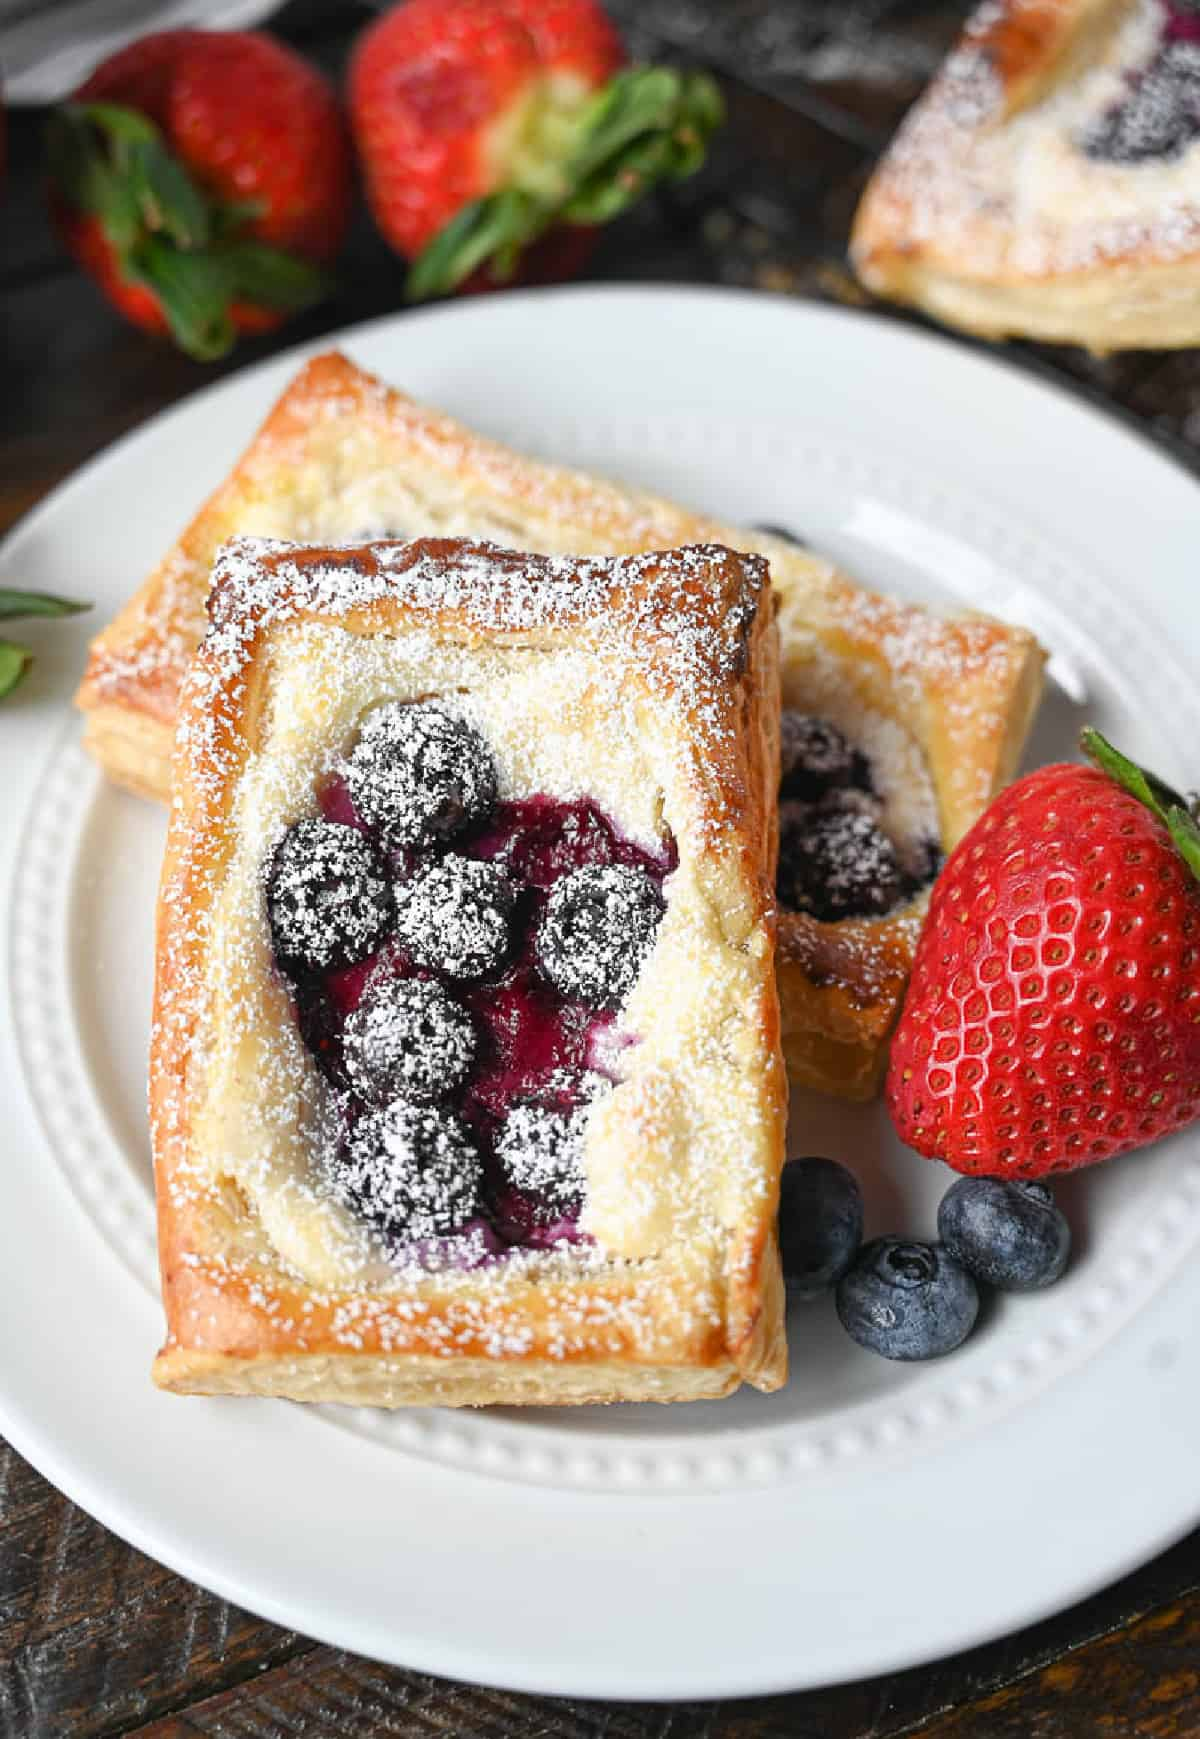 Two blueberry danishes on a small white plate.